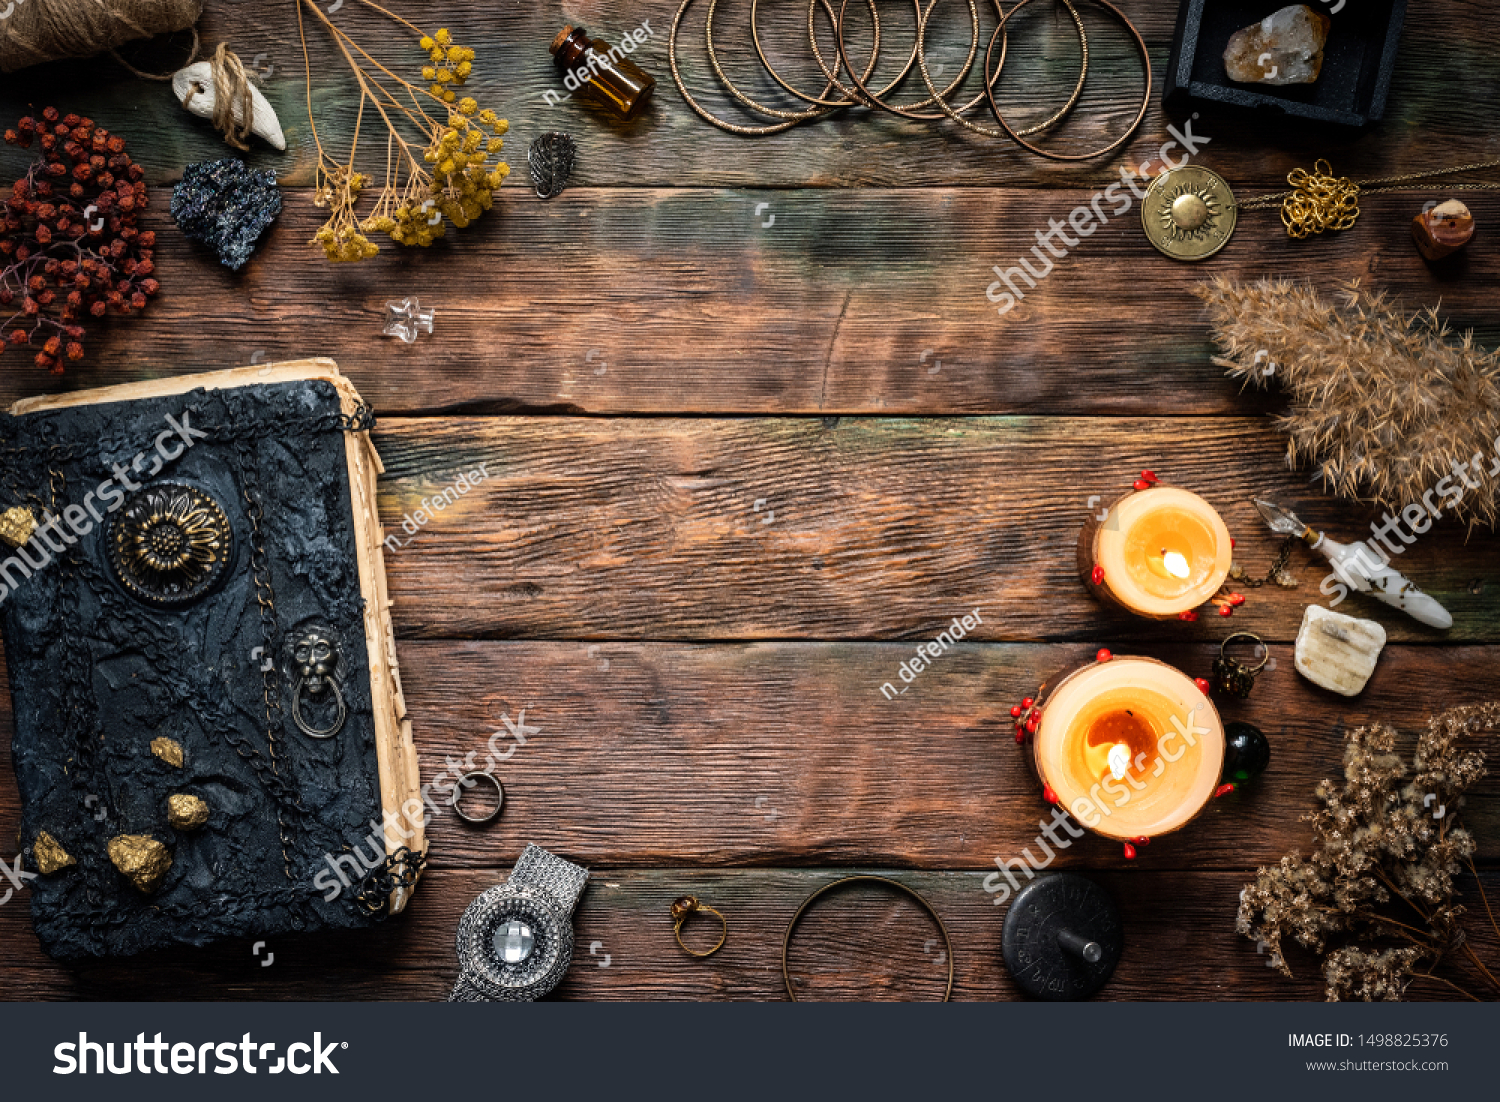 Magic recipe book and a magic potions on a table. Witchcraft background with copy space. Druid or witch doctor table. #1498825376